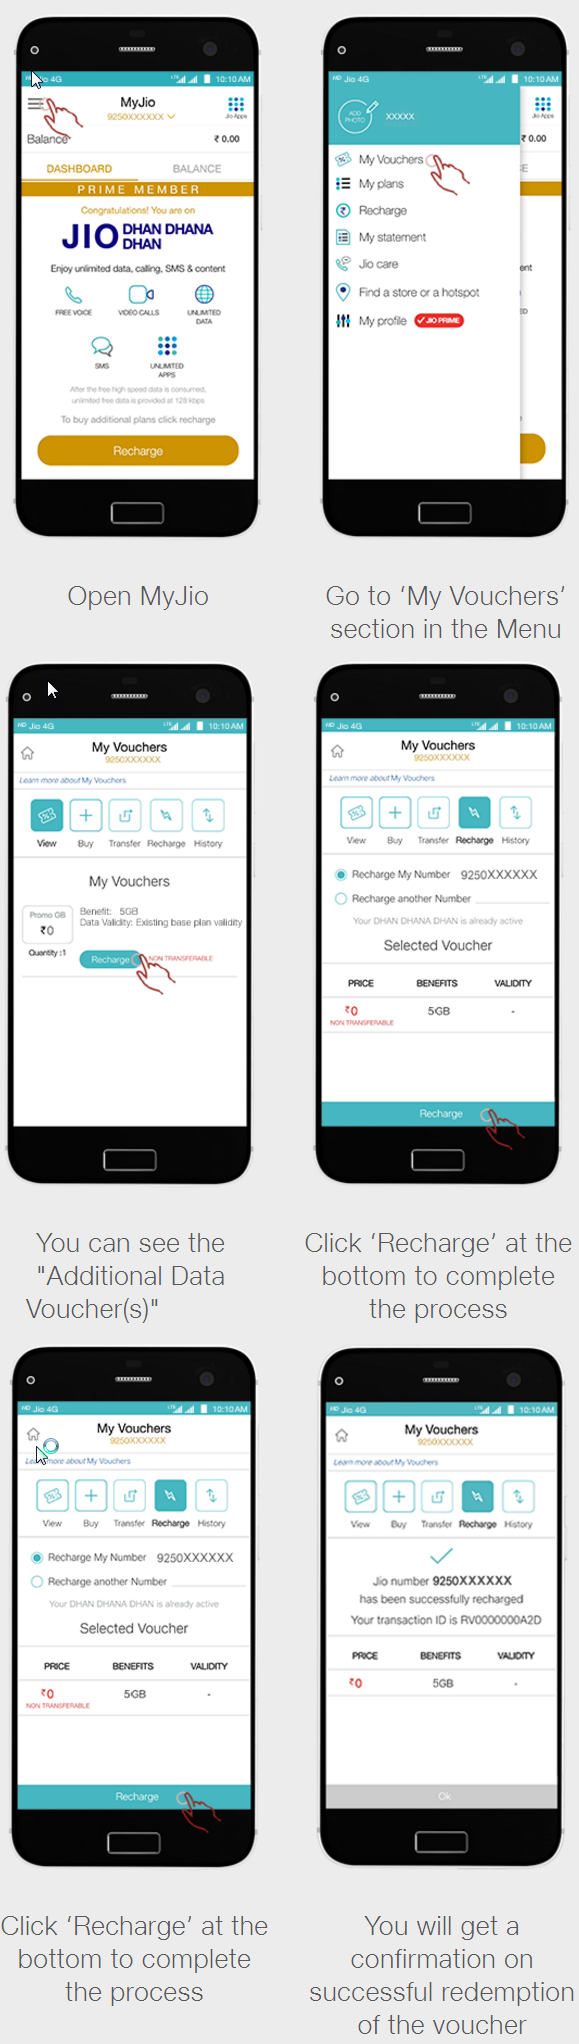 Activate Reliance Jio Extra Data Offer